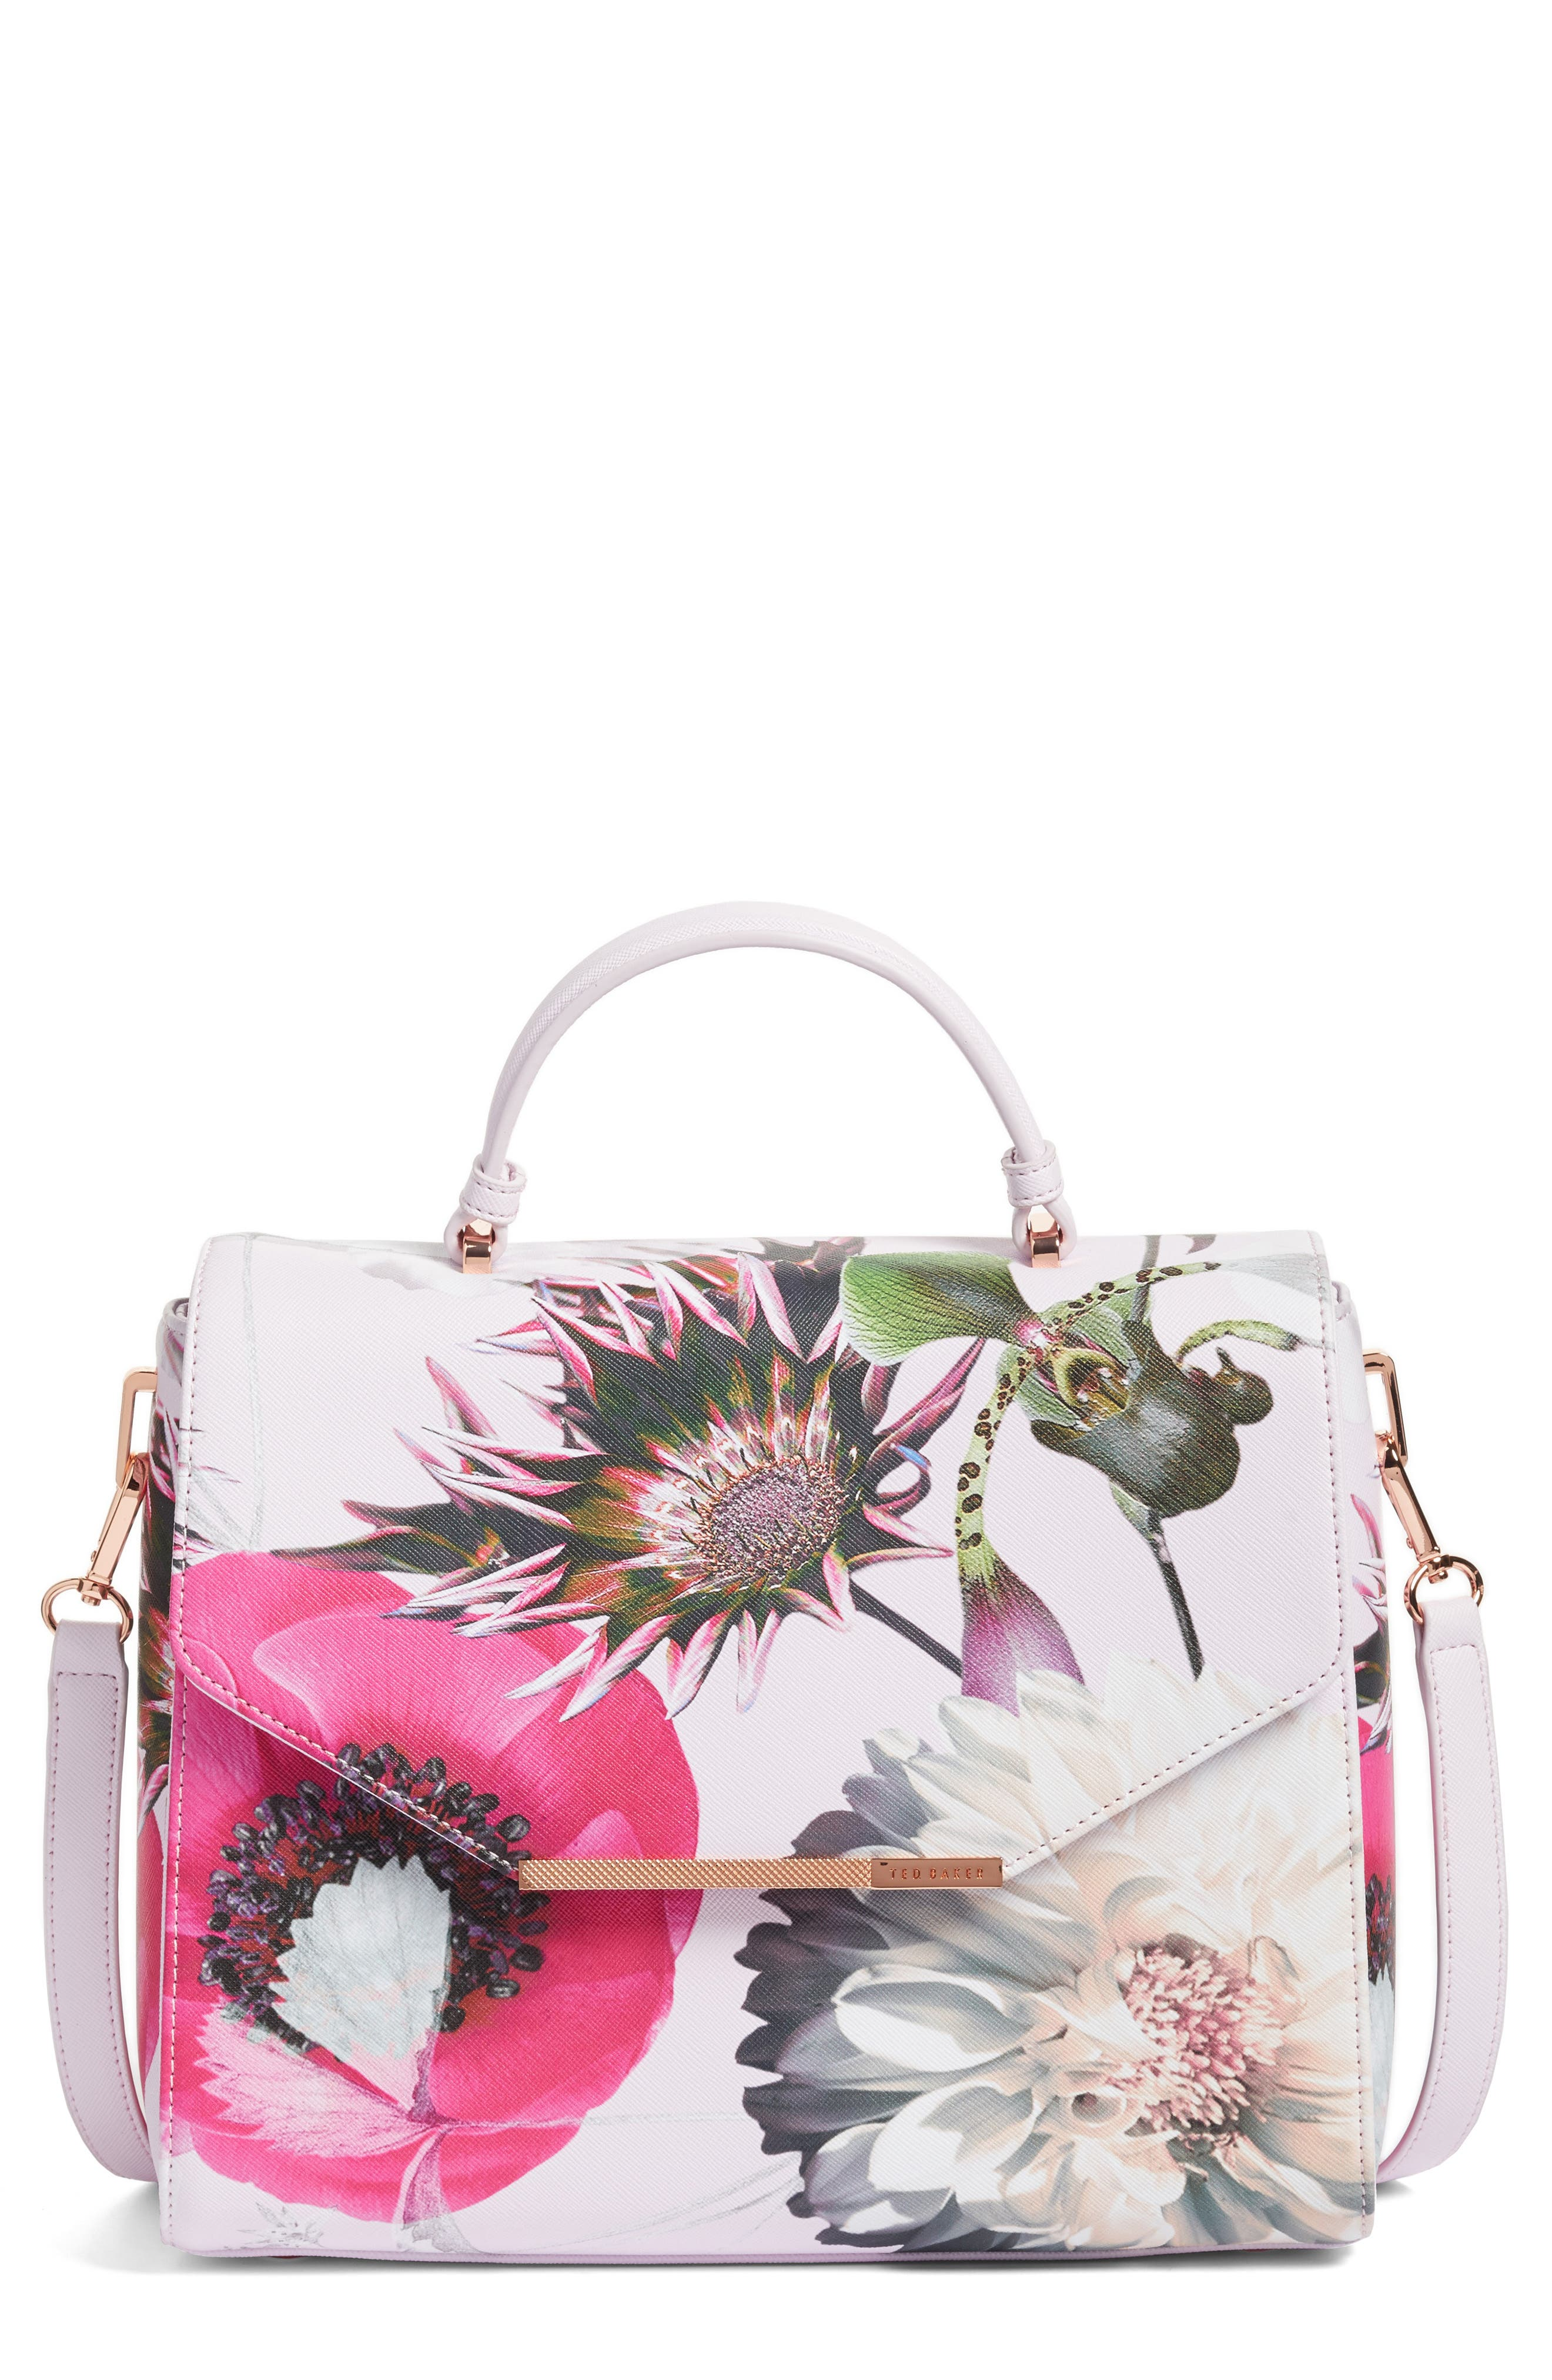 Alternate Image 1 Selected - Ted Baker London Large Paulet Neon Tote (Nordstrom Exclusive)